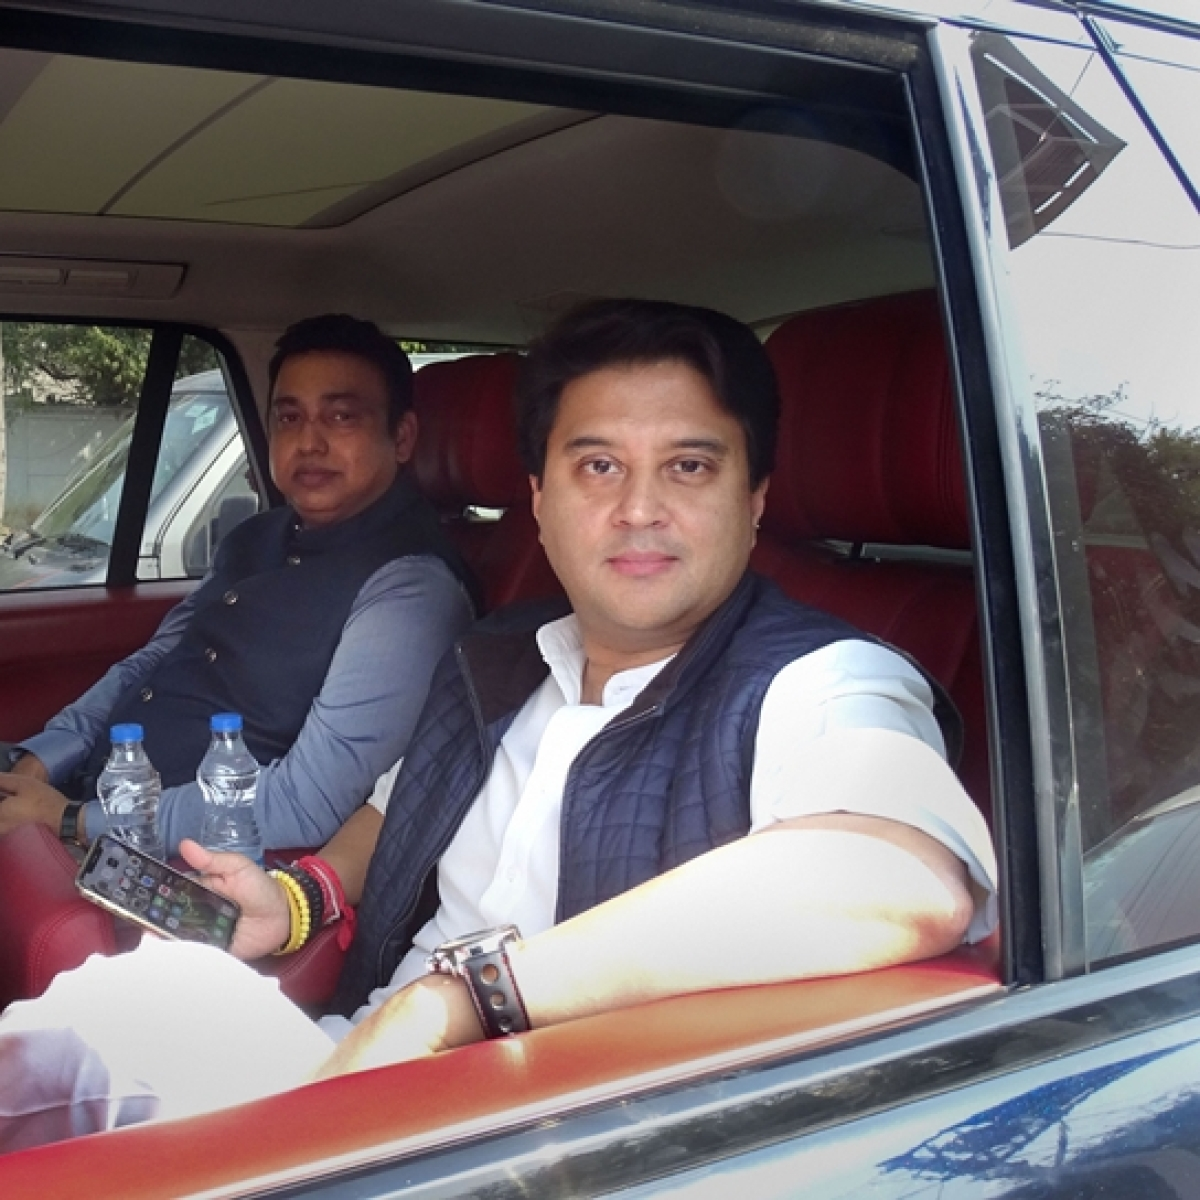 People's victory in Madhya Pradesh: Jyotiraditya Scindia on Kamal Nath resignation